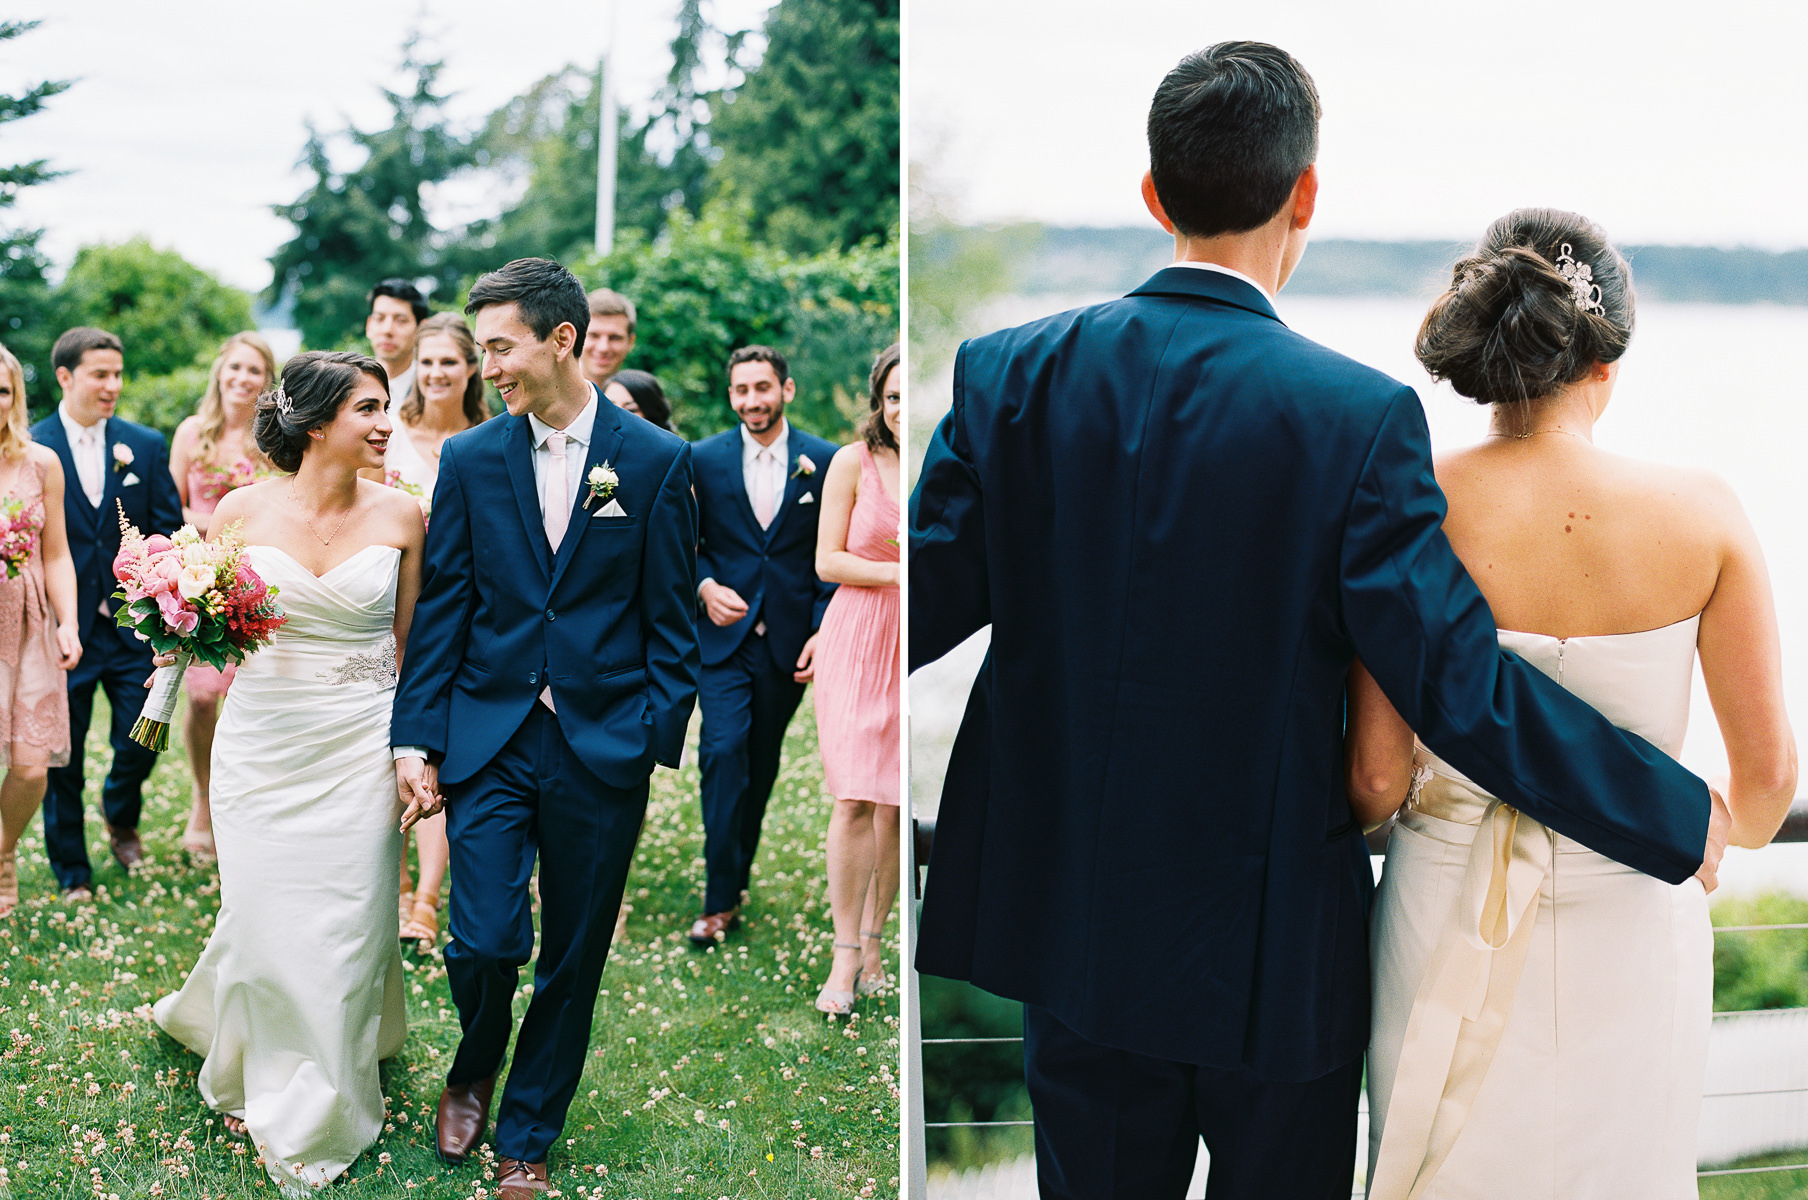 Elegant bridal party in navy and blush captured by top Seattle Wedding Photographer Anna Peters